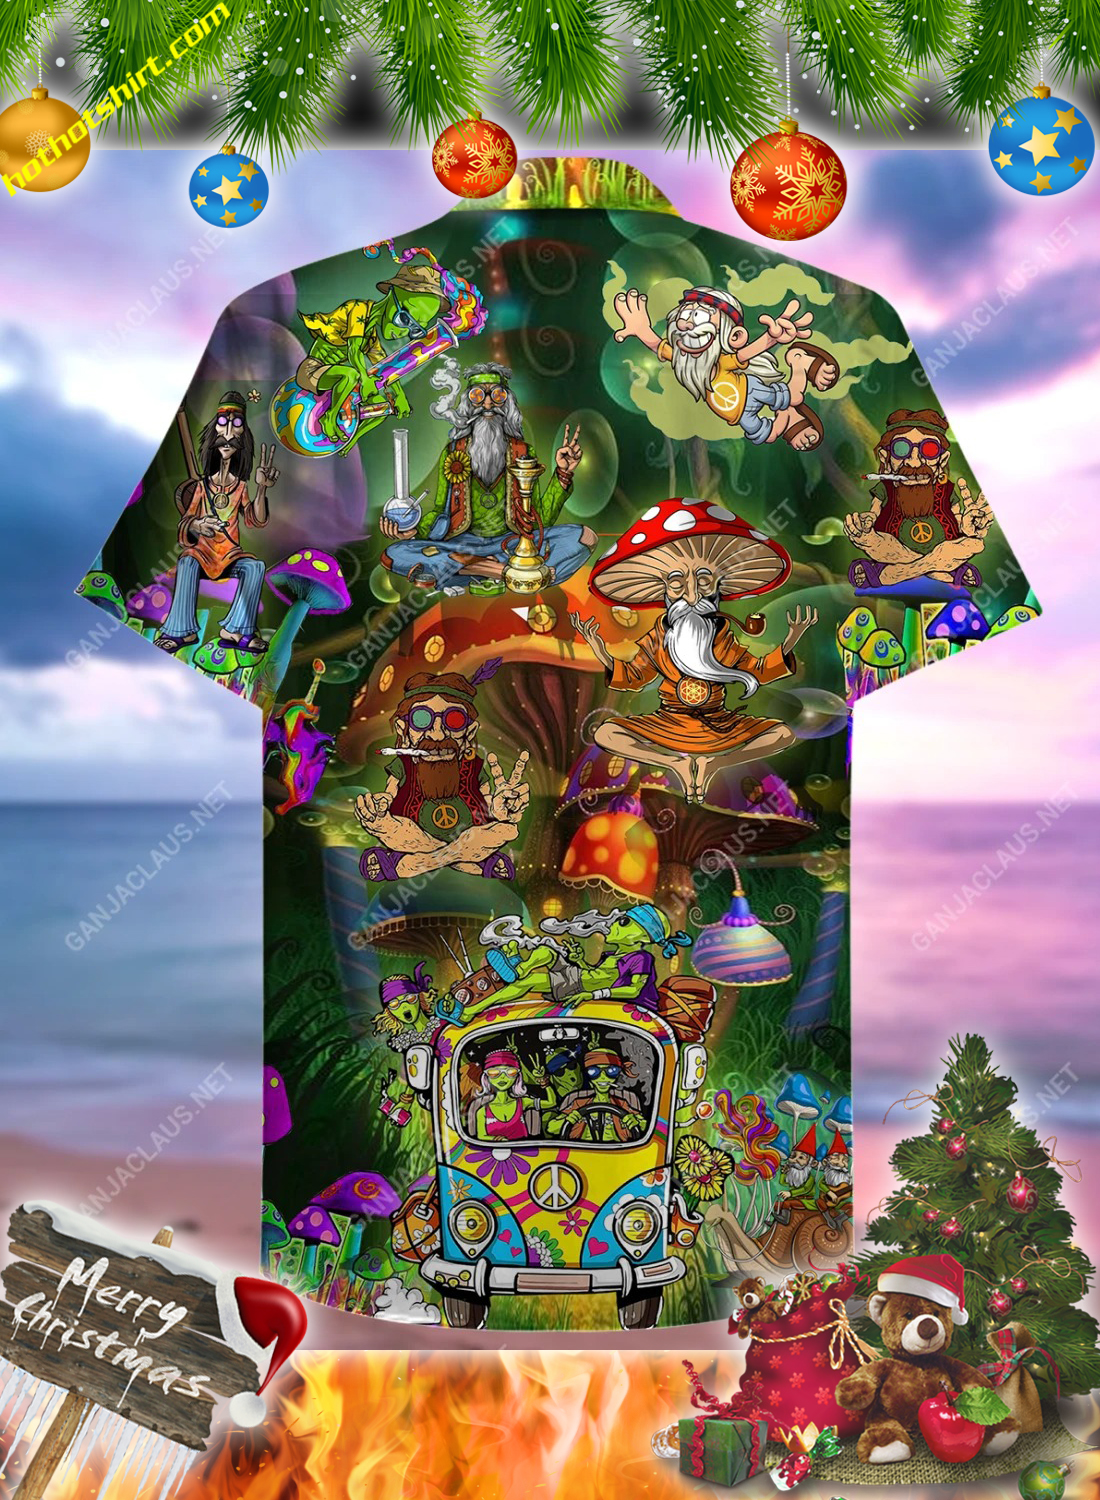 It's A Hippie Thing You Wouldn't Understand hawaiian shirt and short sleeve shirt 2